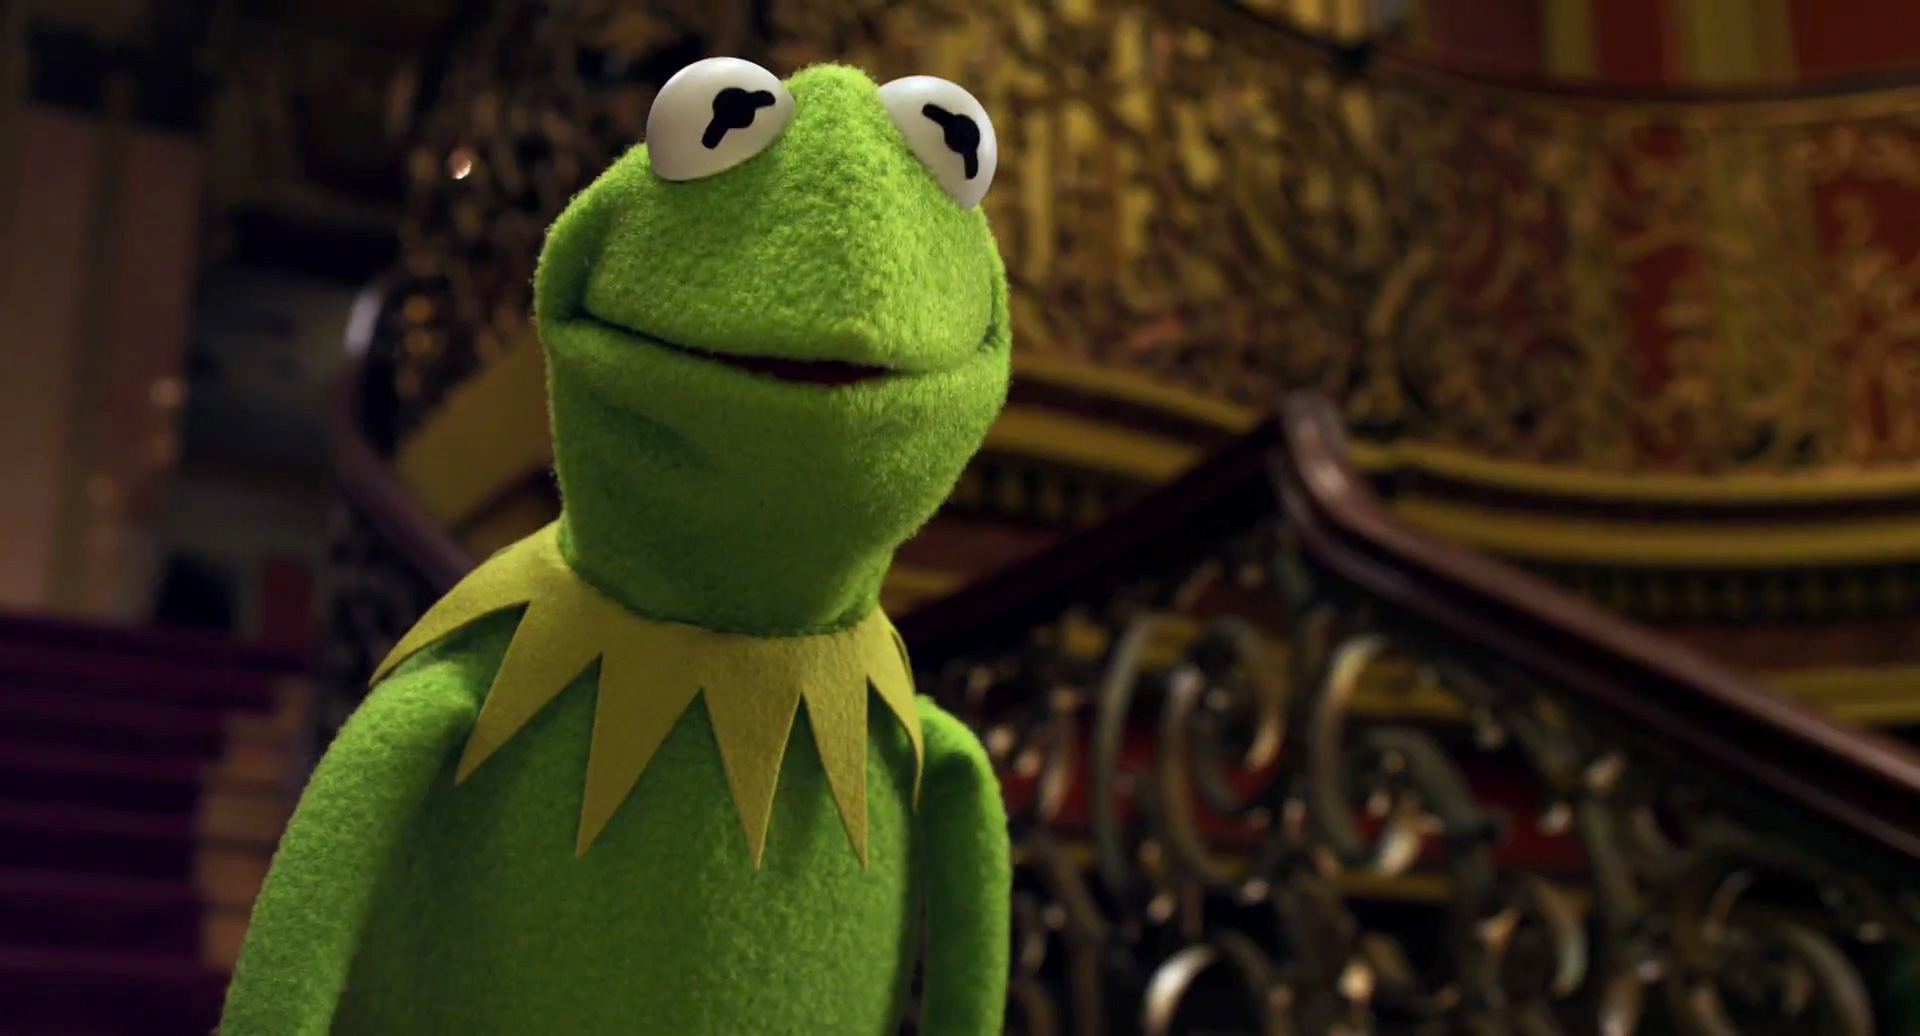 Kermit the frog angry - photo#25